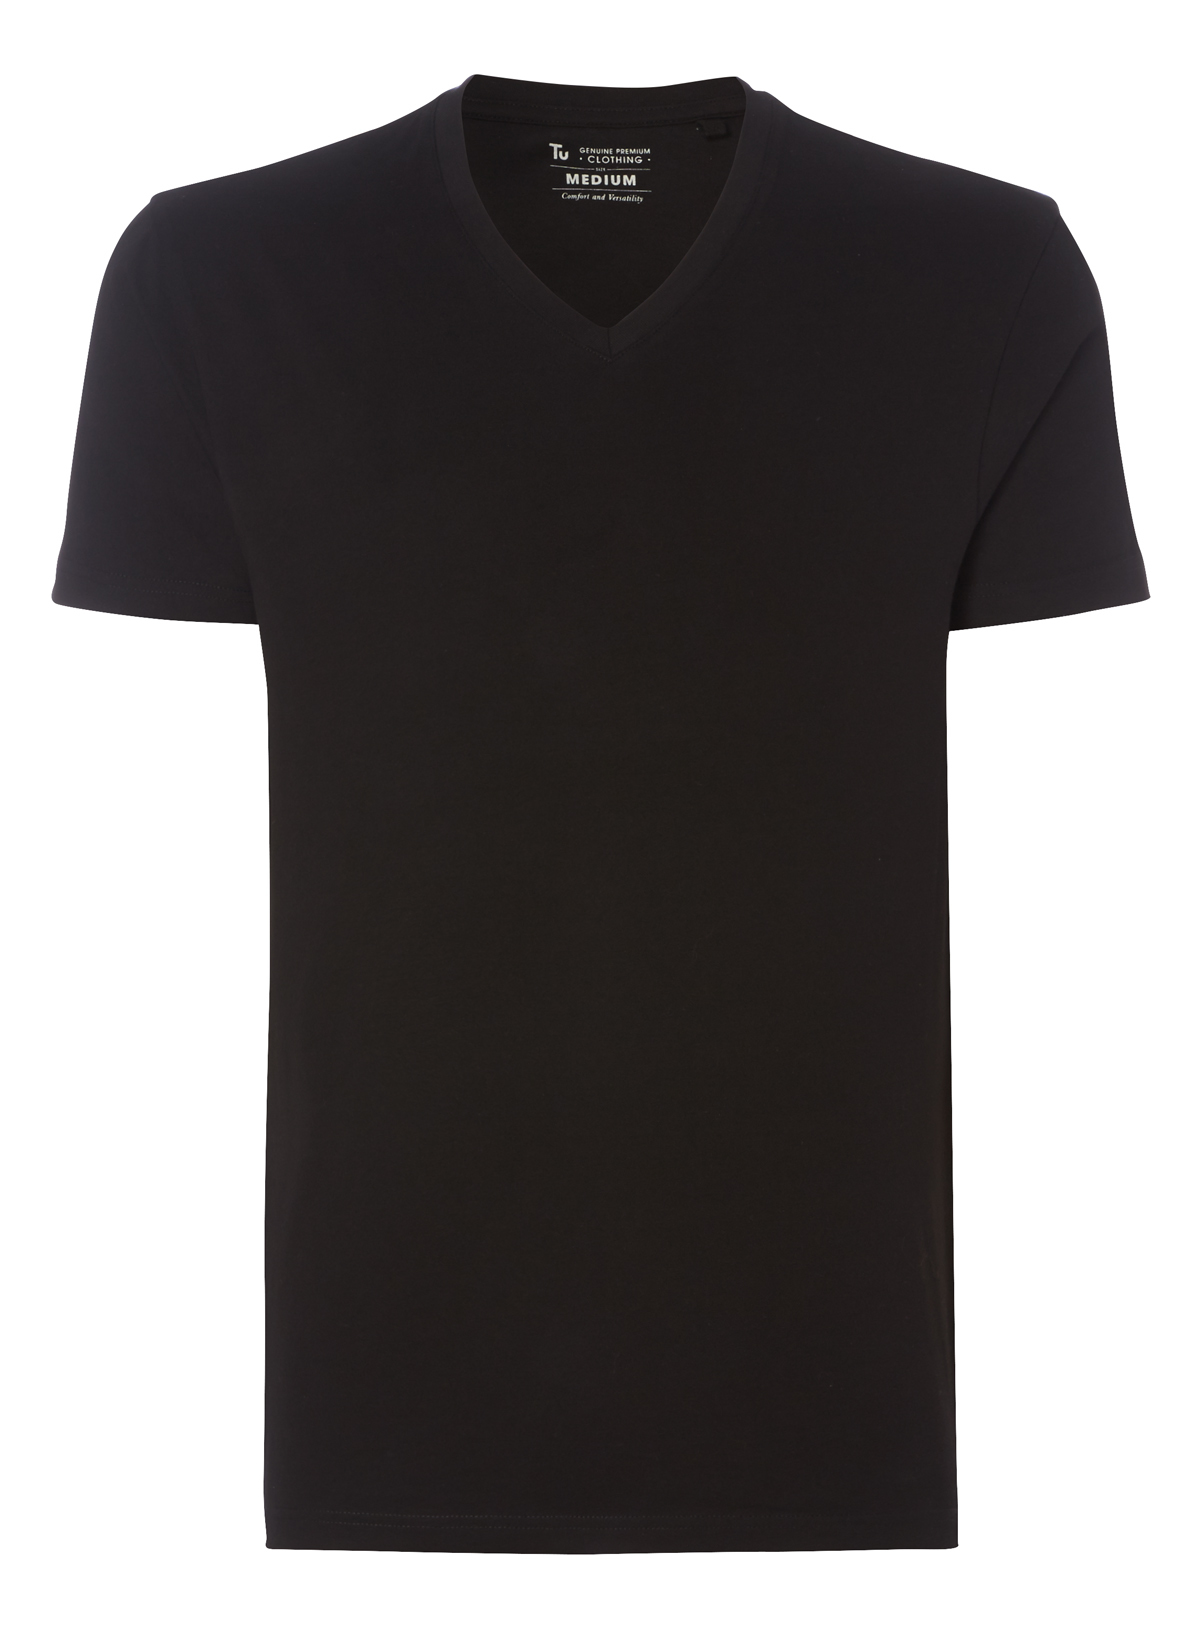 Black t shirts v neck - Black V Neck T Shirt